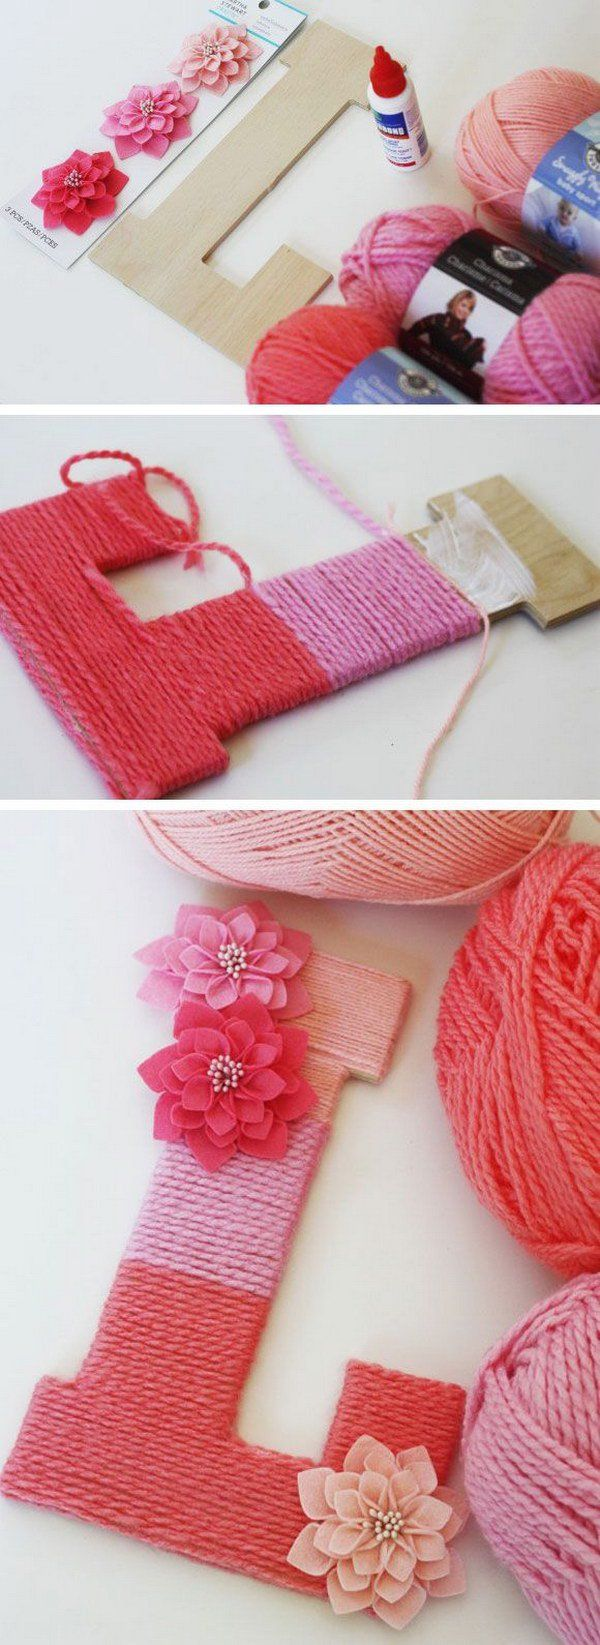 DIY Yarn Wrapped Ombre Monogrammed Decorative Letters